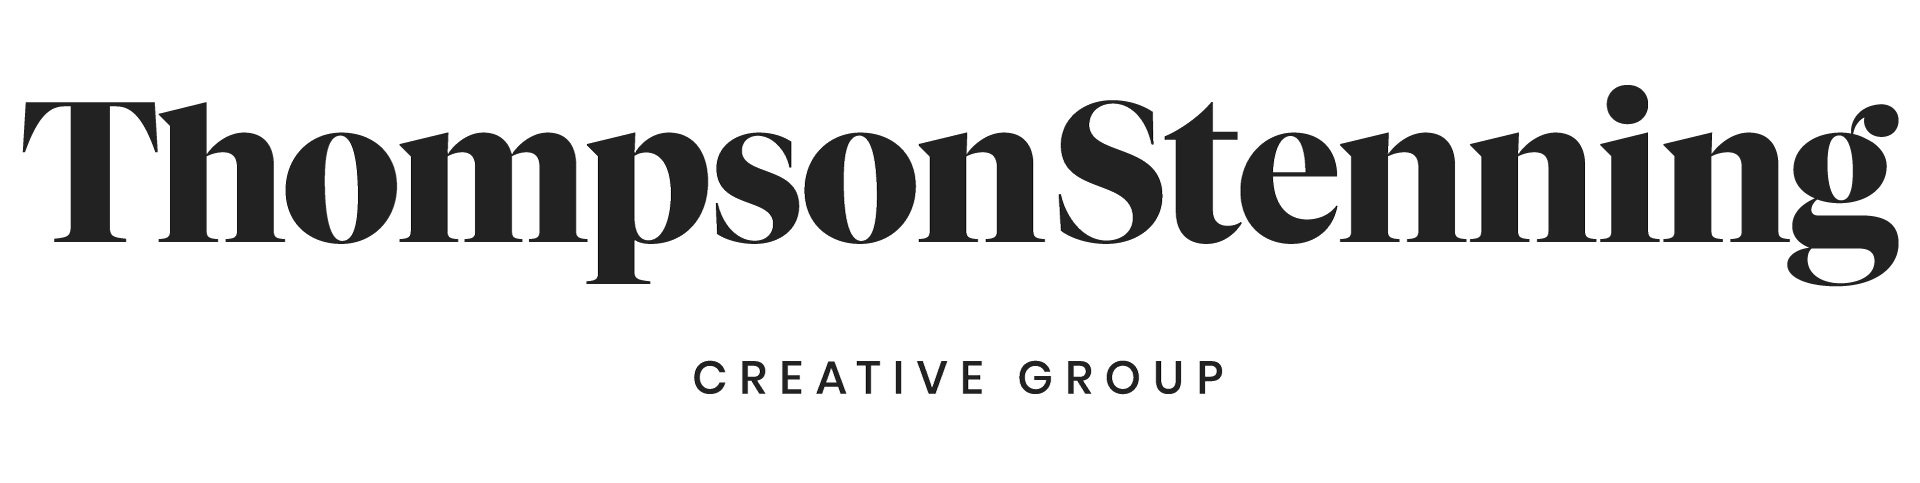 ThompsonStenning Creative Group